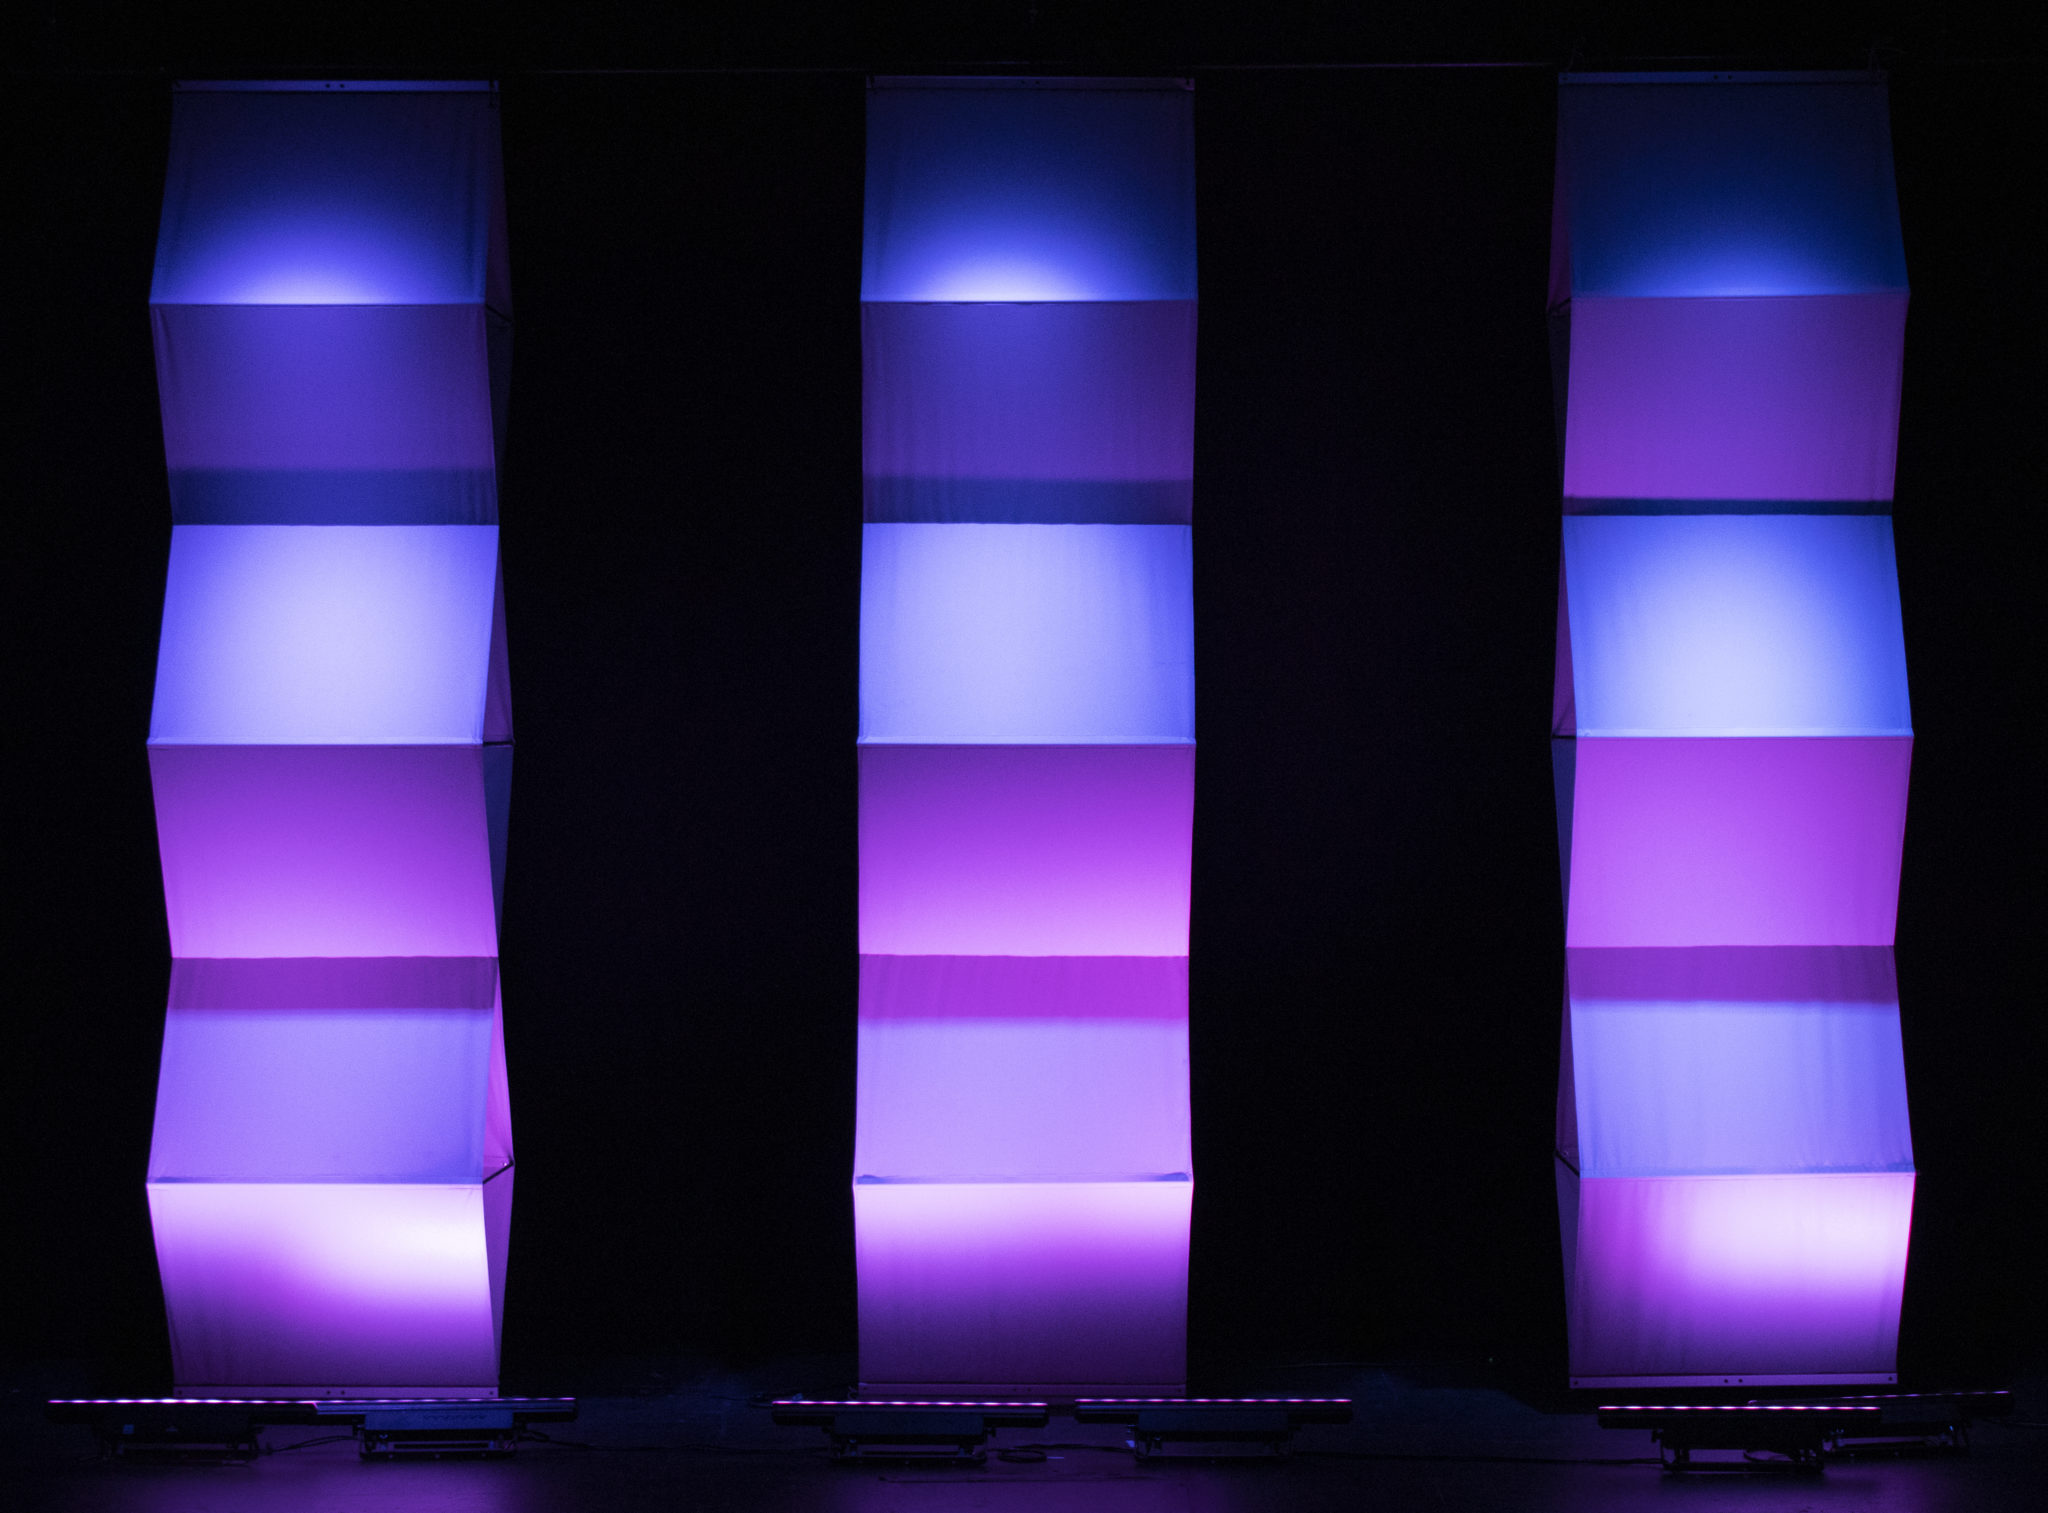 Yoga panels light well and add depth to your stage